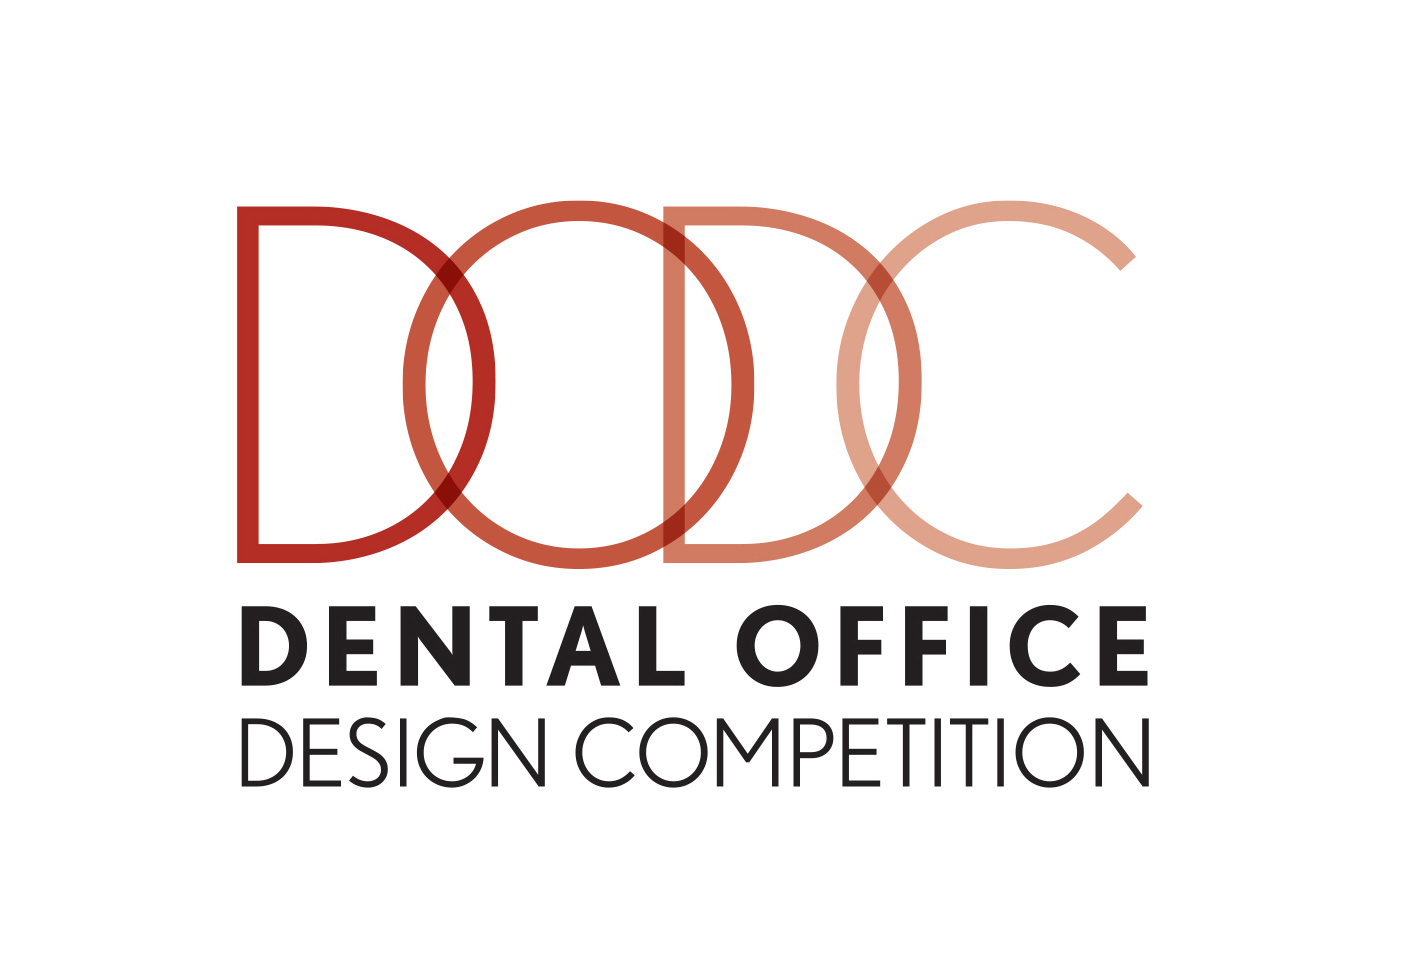 Dental office designs photos Chiropractic Office Dental Office Design Competition Logo Planosdesaudeinfo Dental Office Design Competition Events Wells Fargo Practice Finance